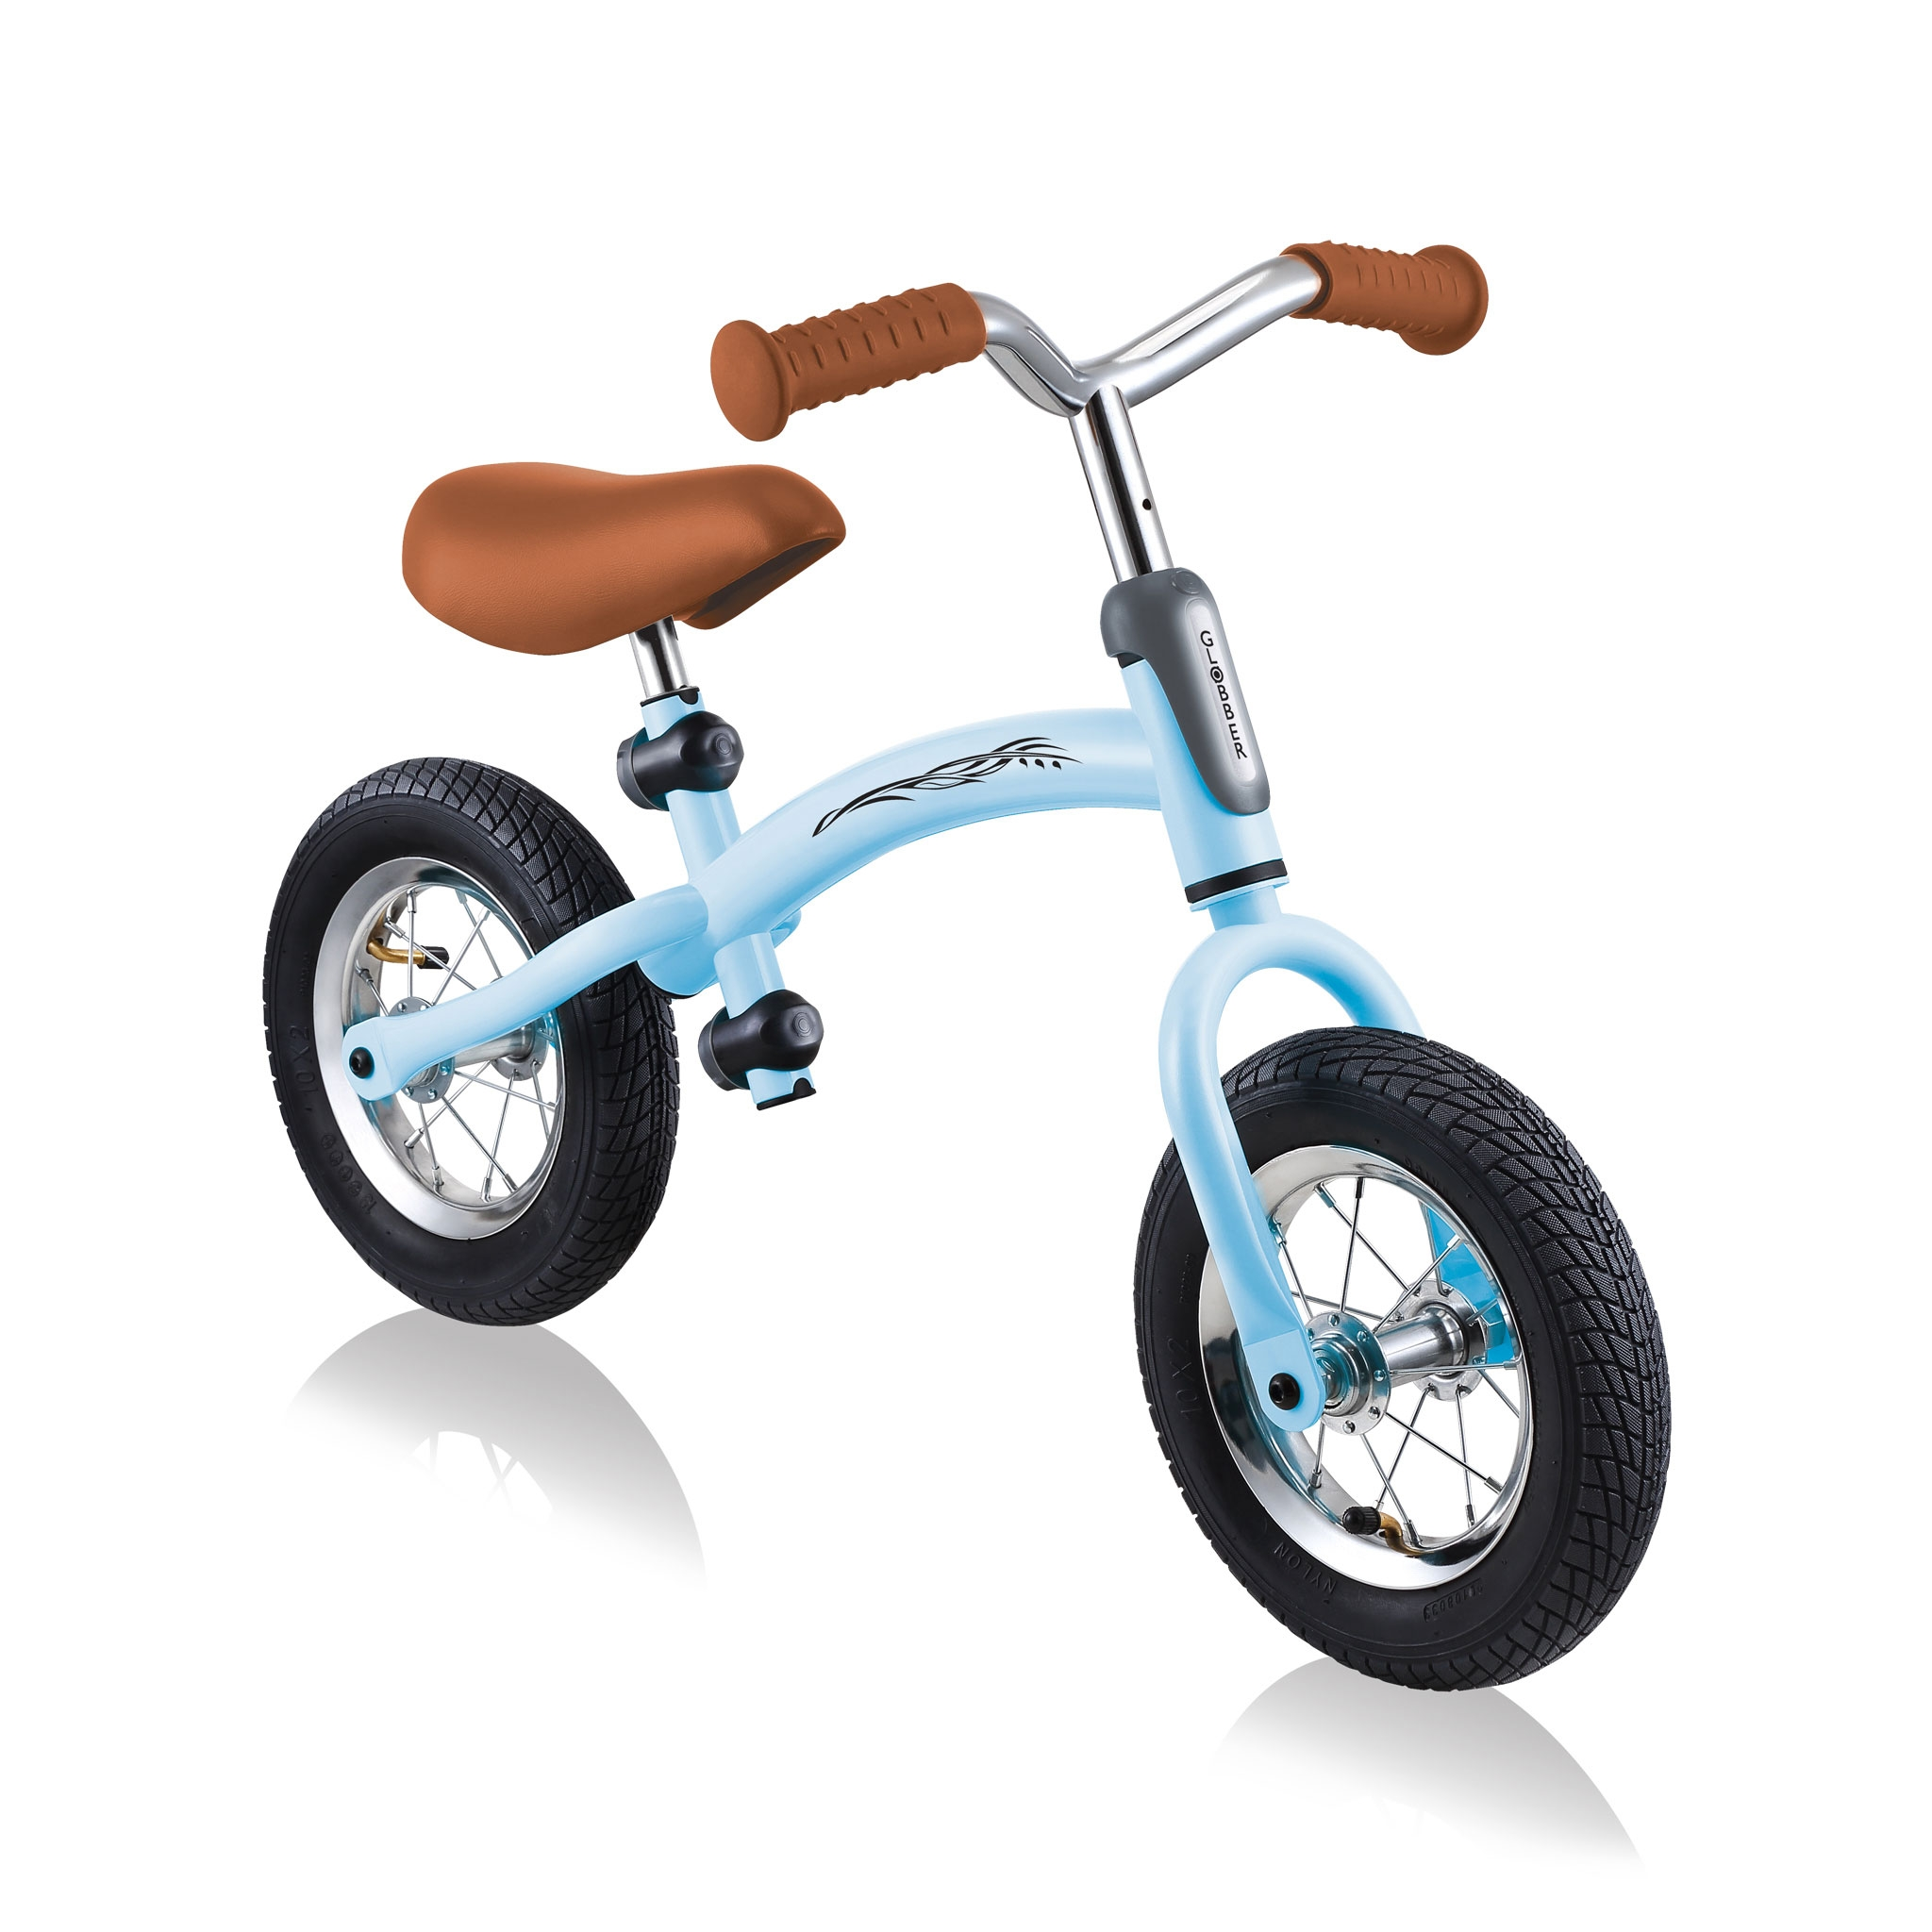 GO-BIKE-AIR-best-toddler-balance-bike-for-kids-aged-3-to-6_pastel-blue